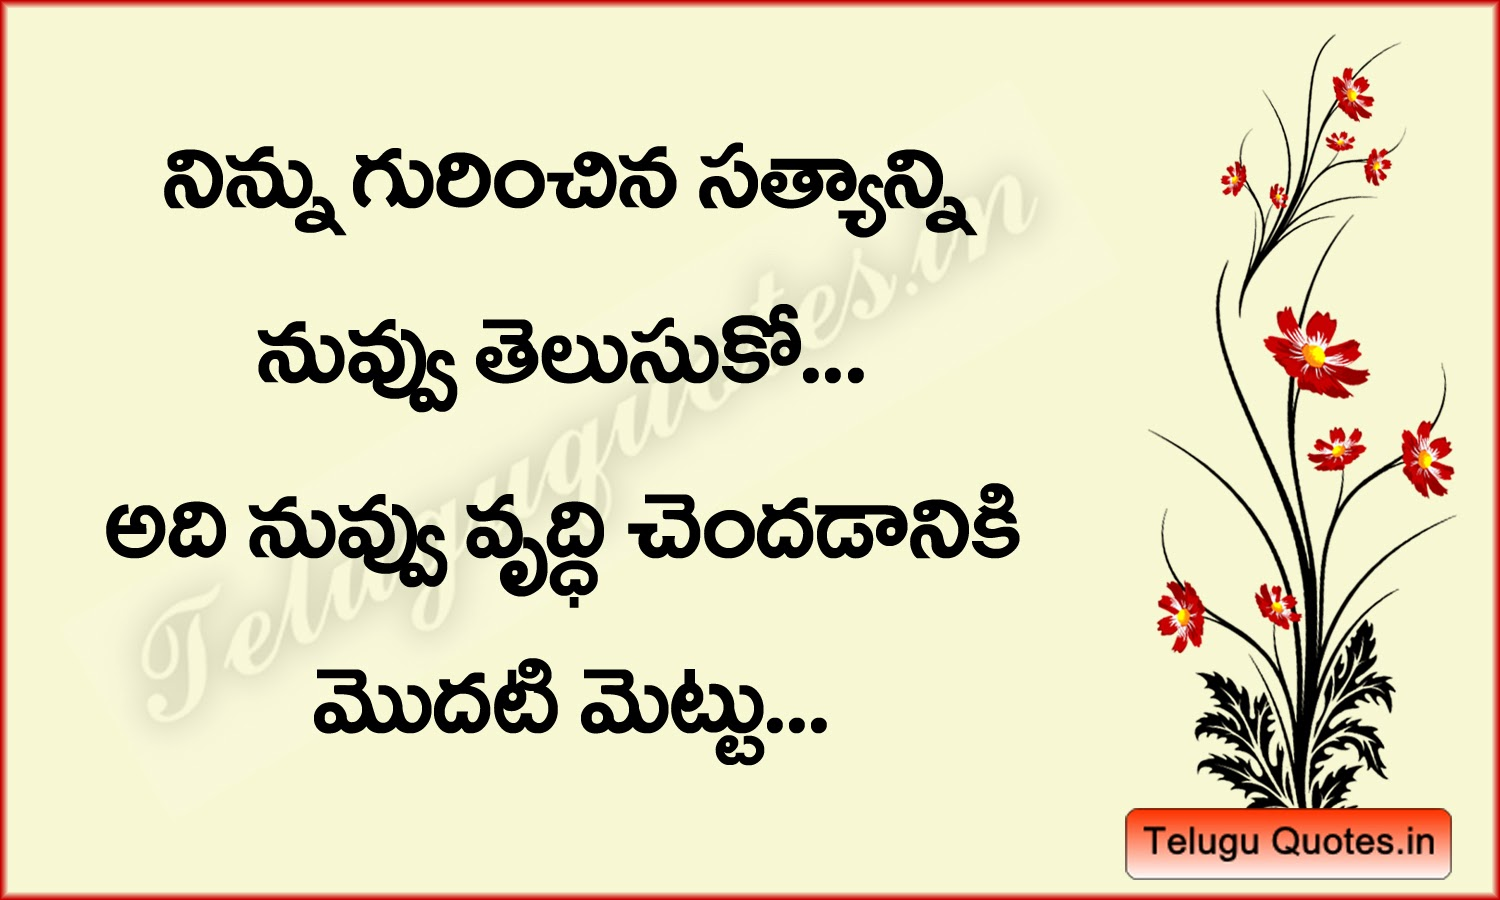 Latest Quotes About Life Latest Telugu Quotes In Life  Telugu Quotes.in